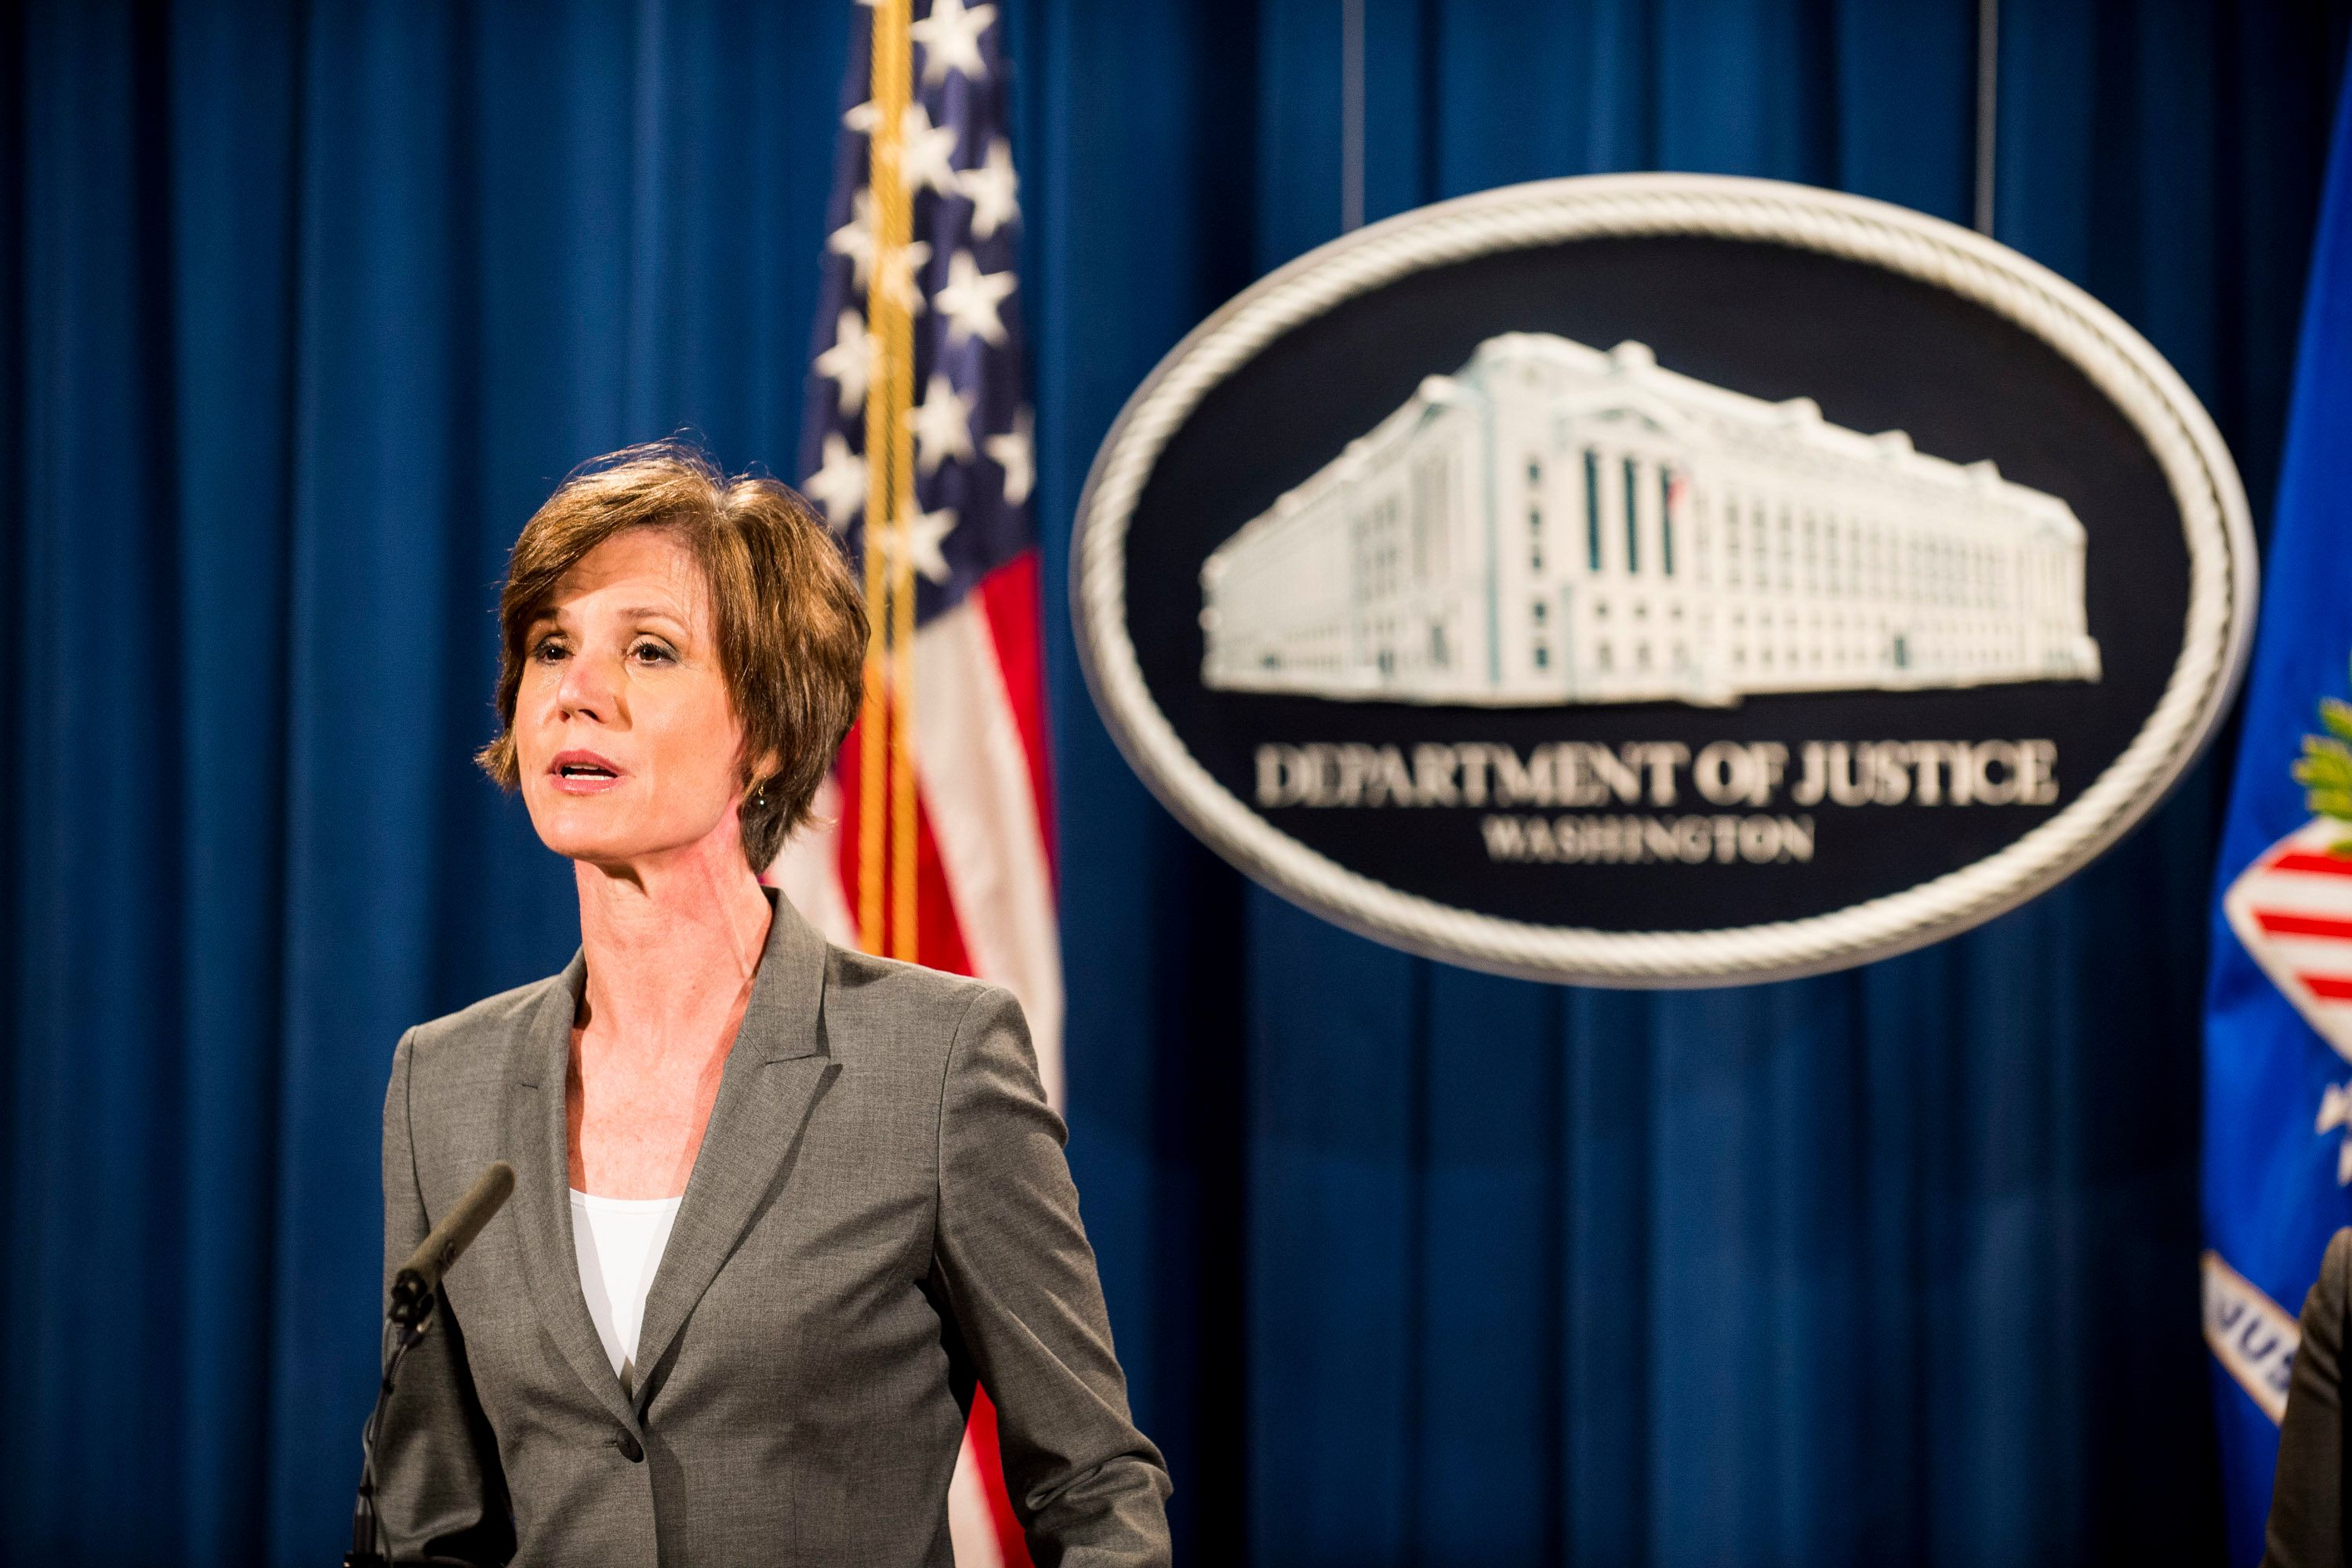 Former Acting and Deputy Attorney General Sally Q. Yates.